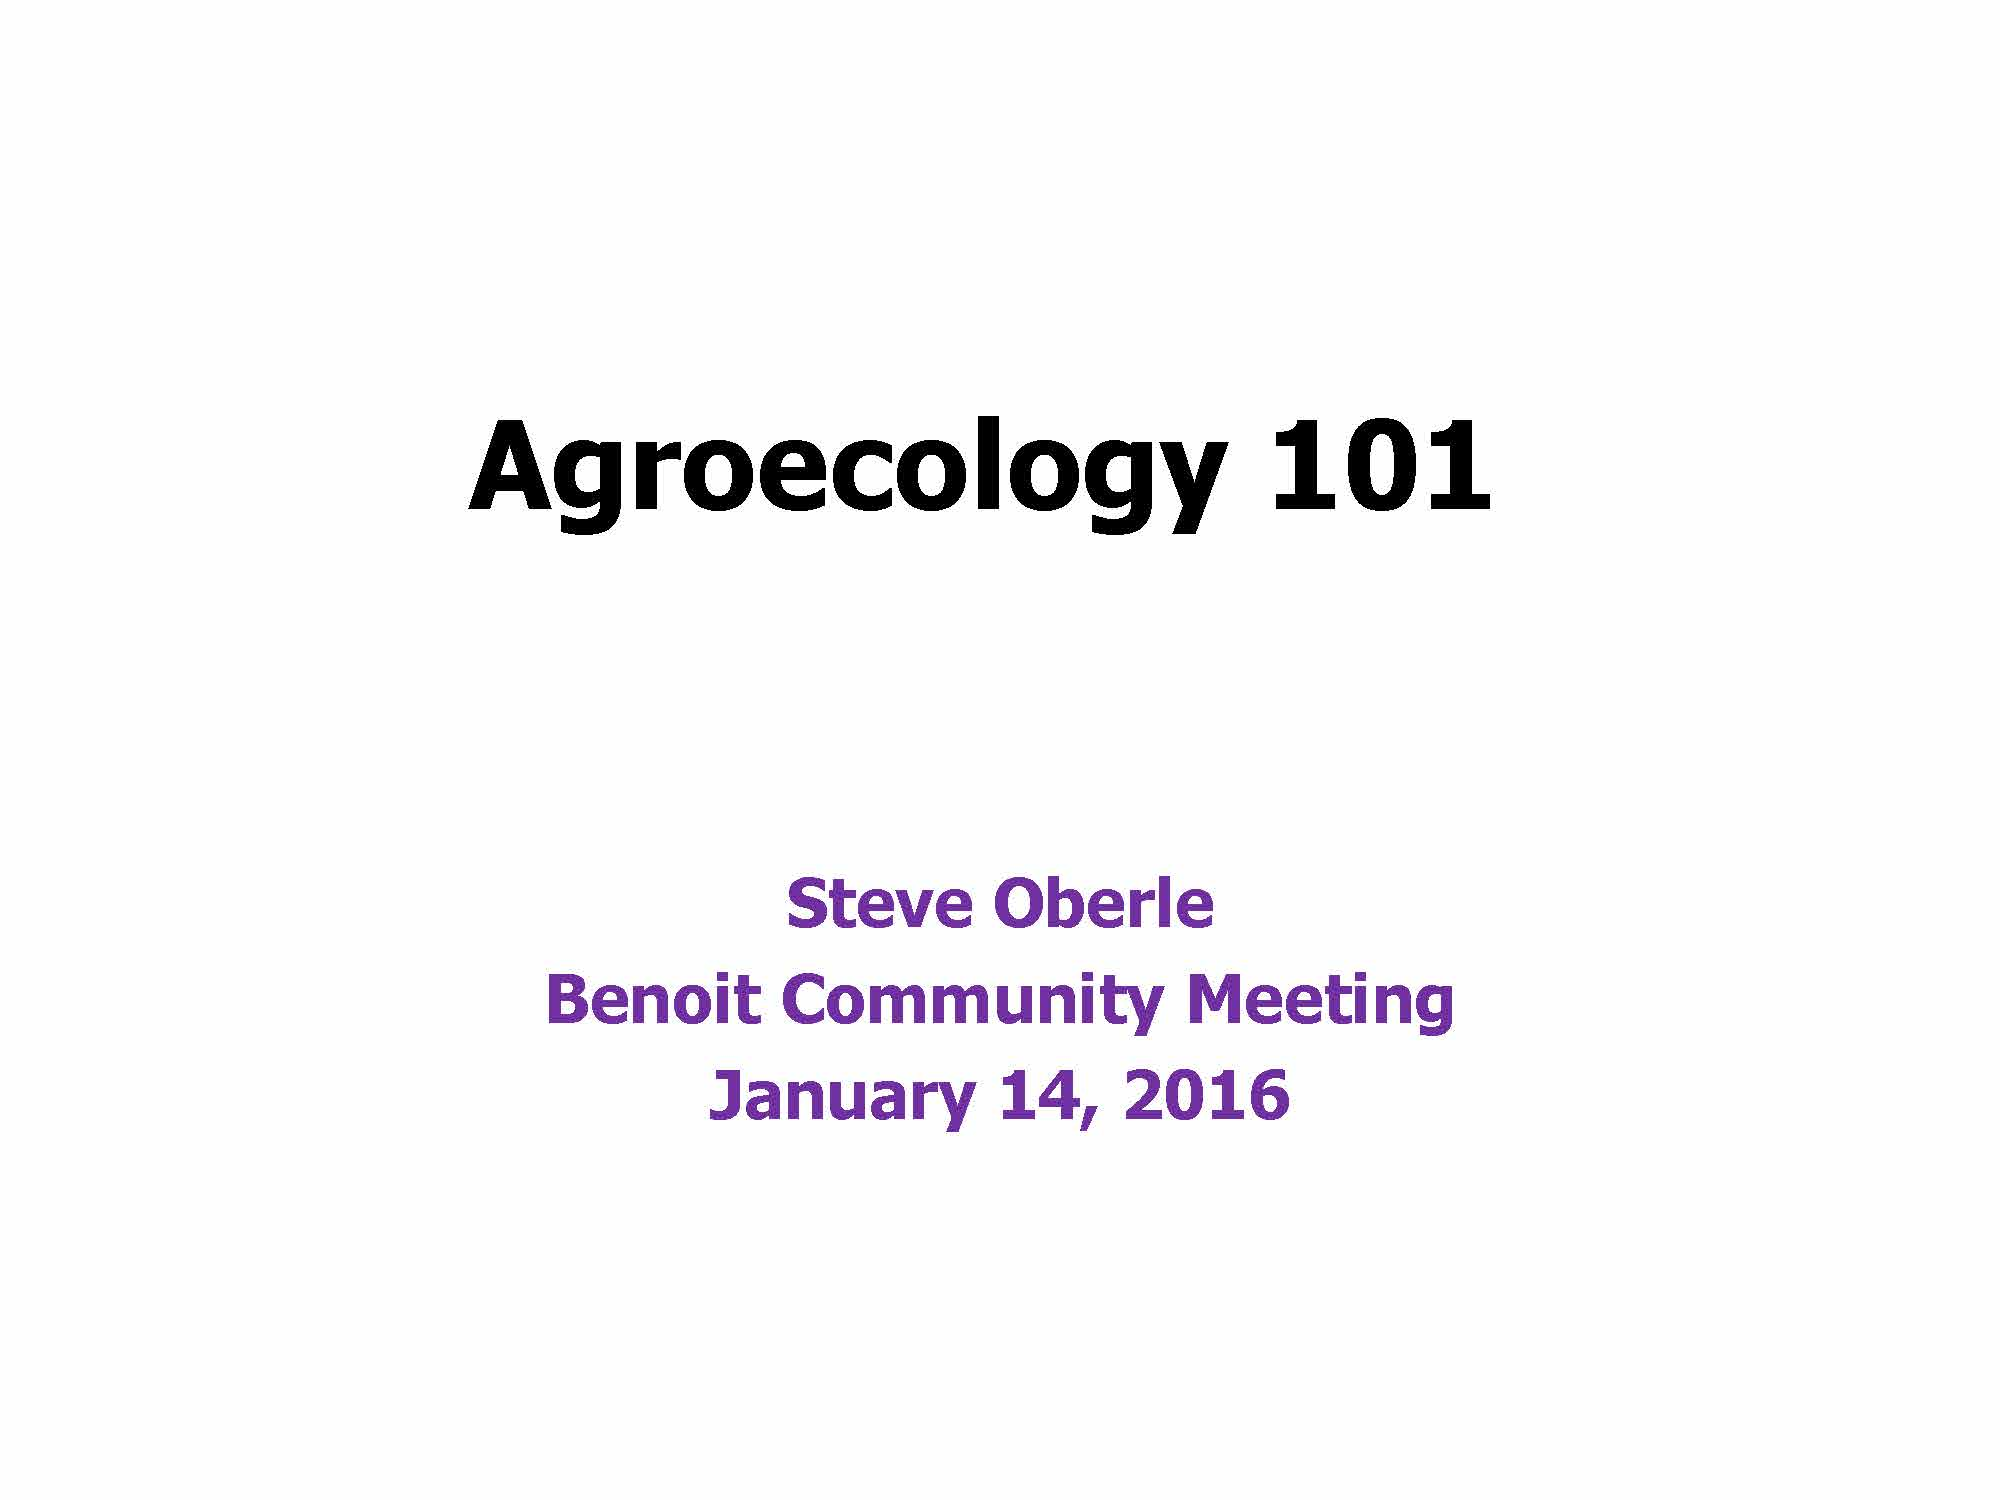 Benoit meeting presentation - January 2016_Page_01.jpg